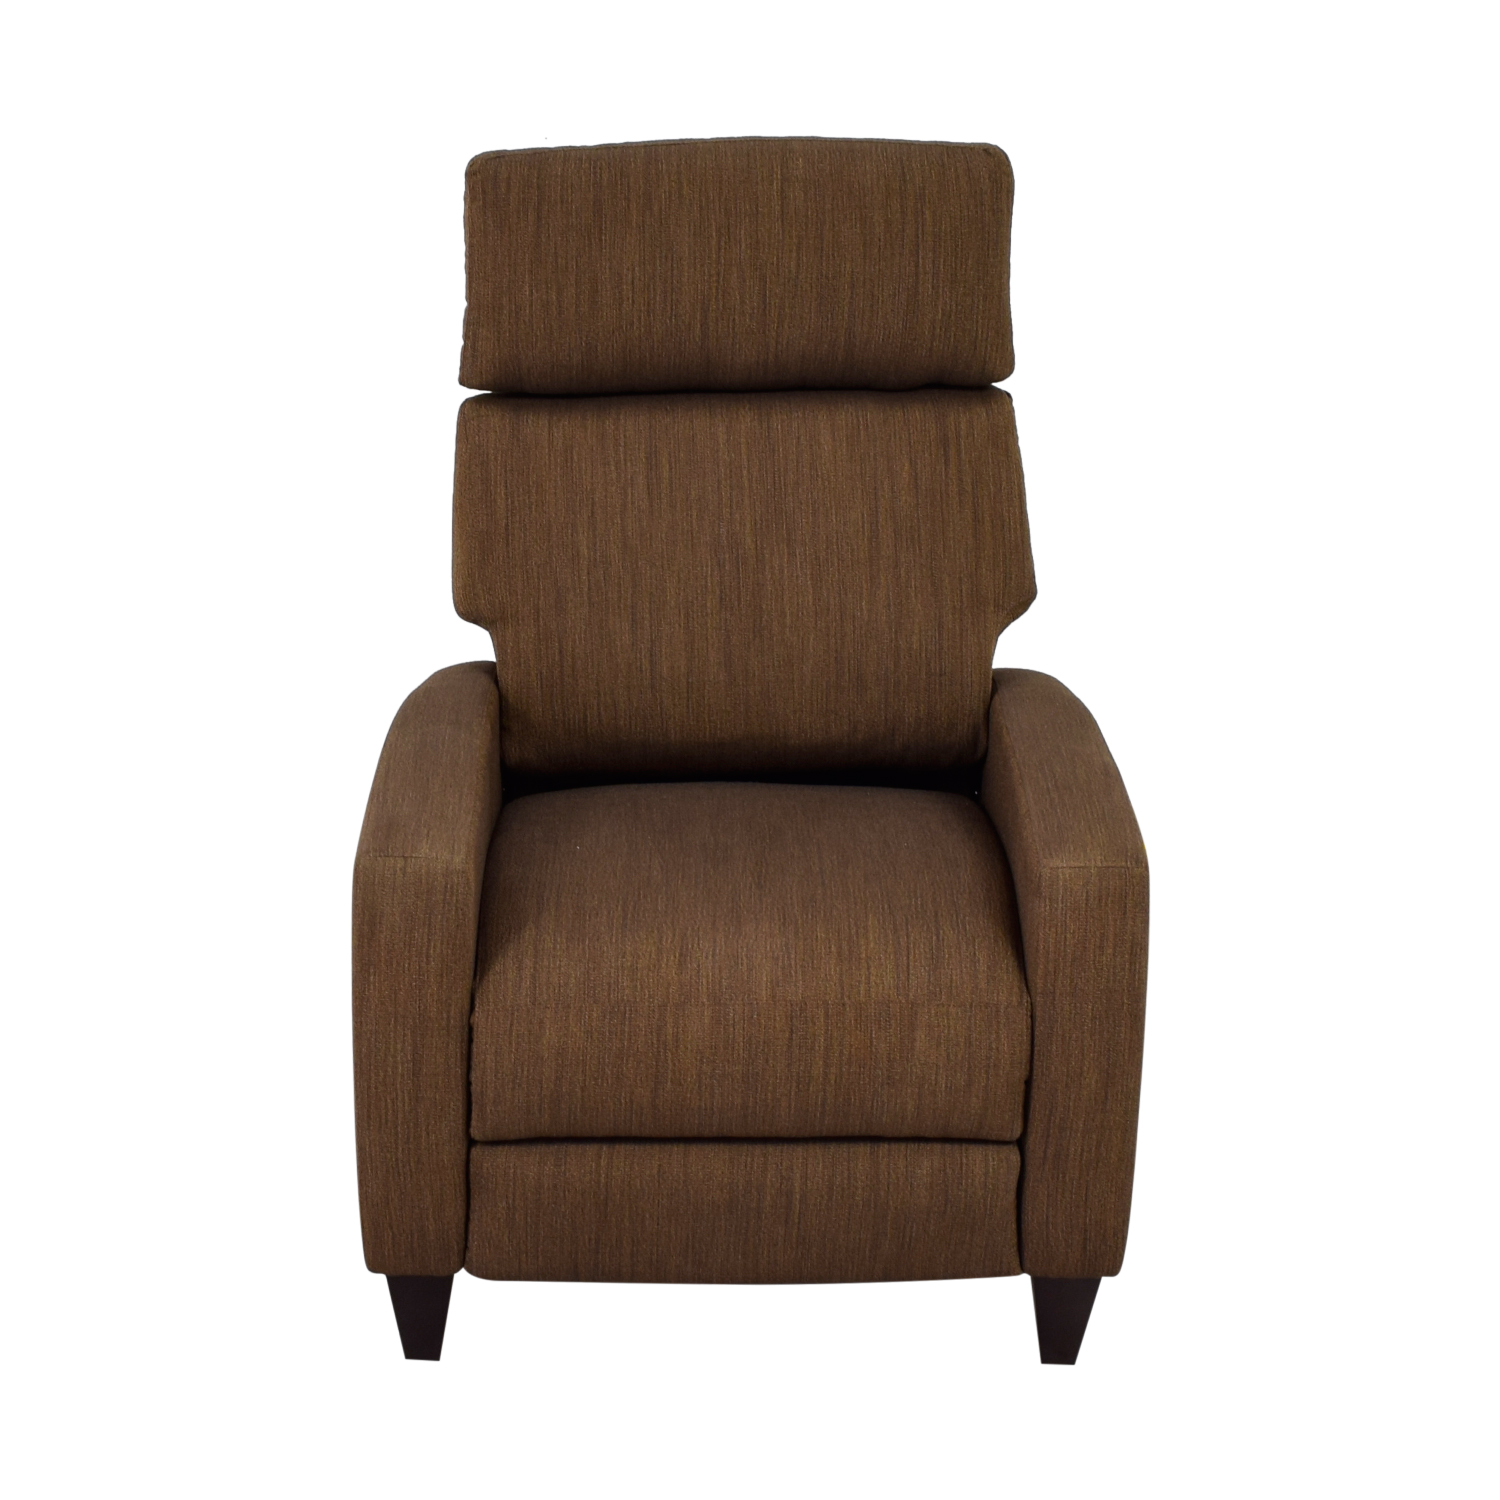 Electric Recliner Leather Chairs 78 Off American Leather American Leather Brown Tweed Electric Recliner Chair Chairs